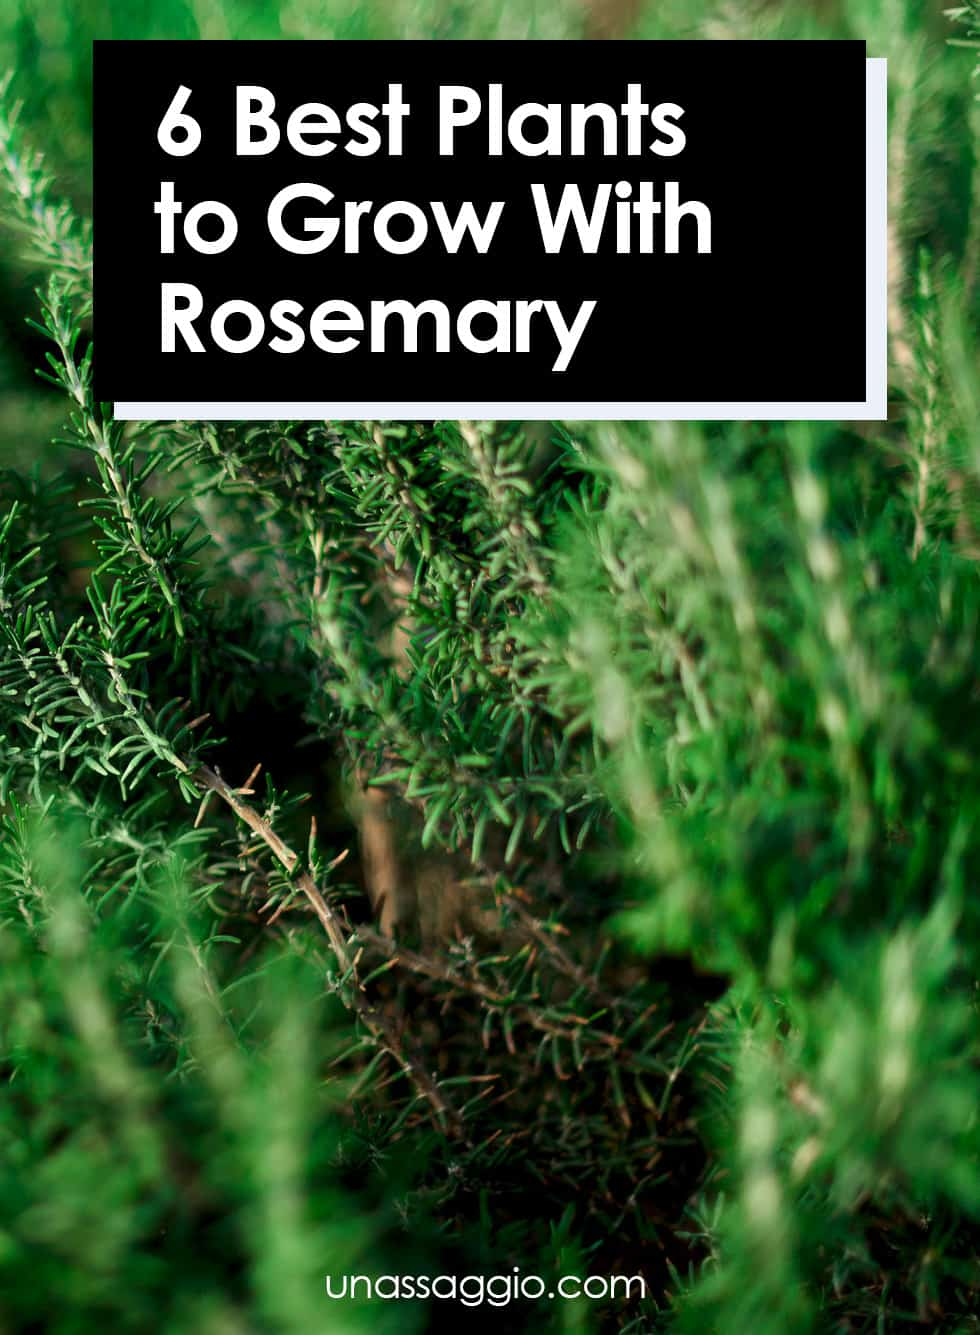 6 Best Plants to Grow With Rosemary